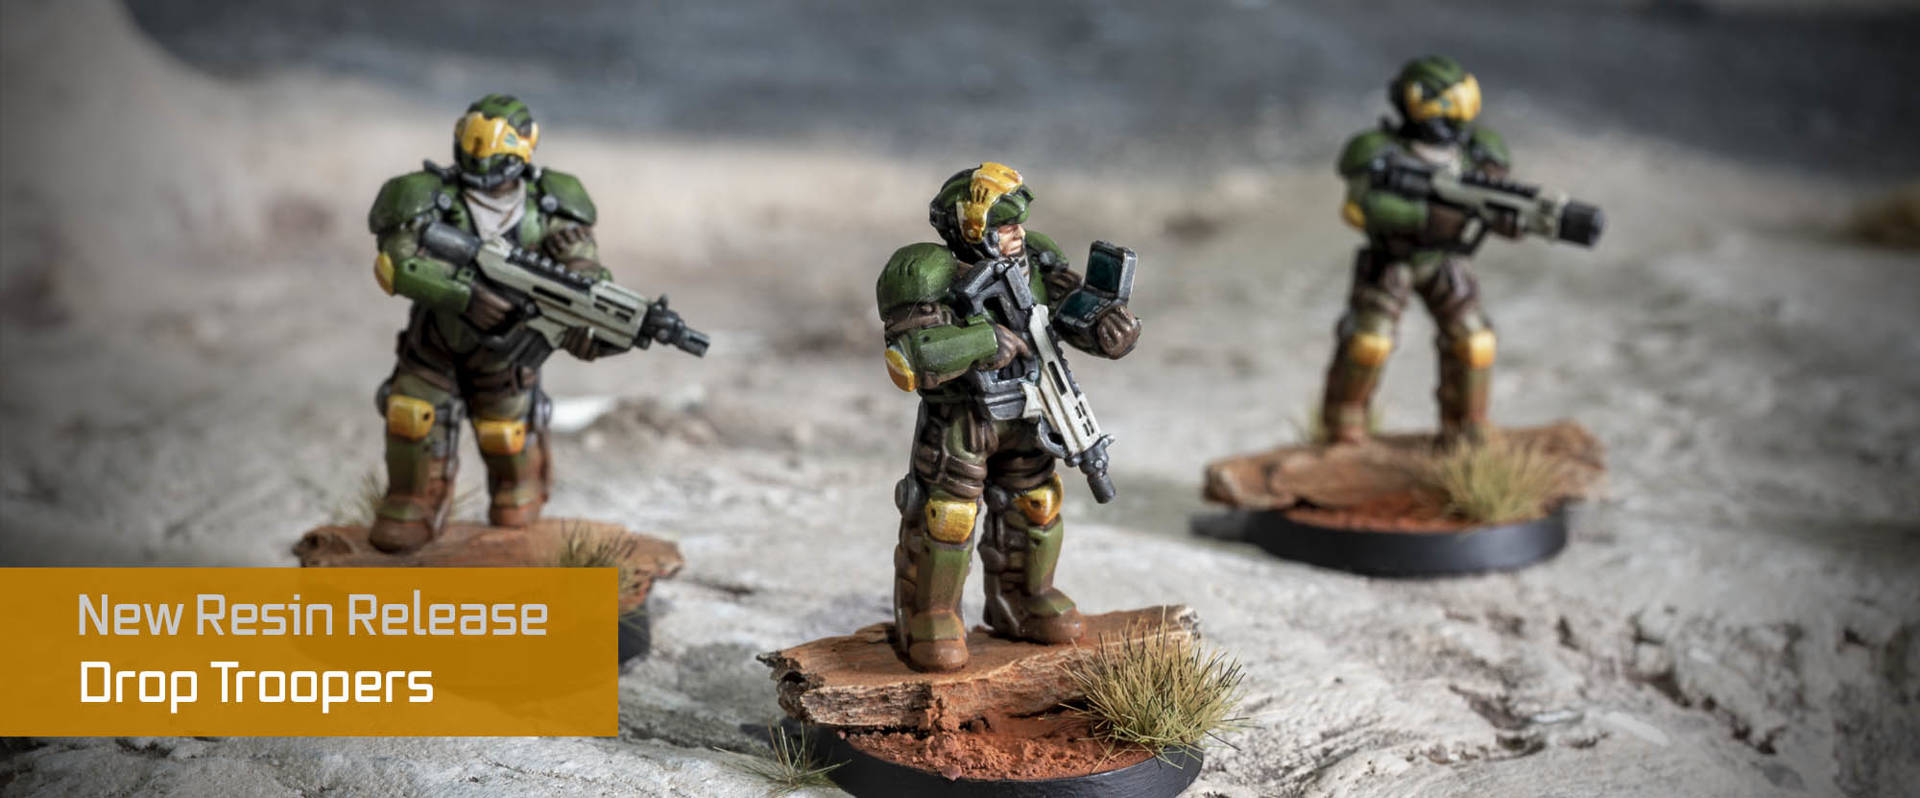 High-Tech Drop Trooper Wargaming Miniatures